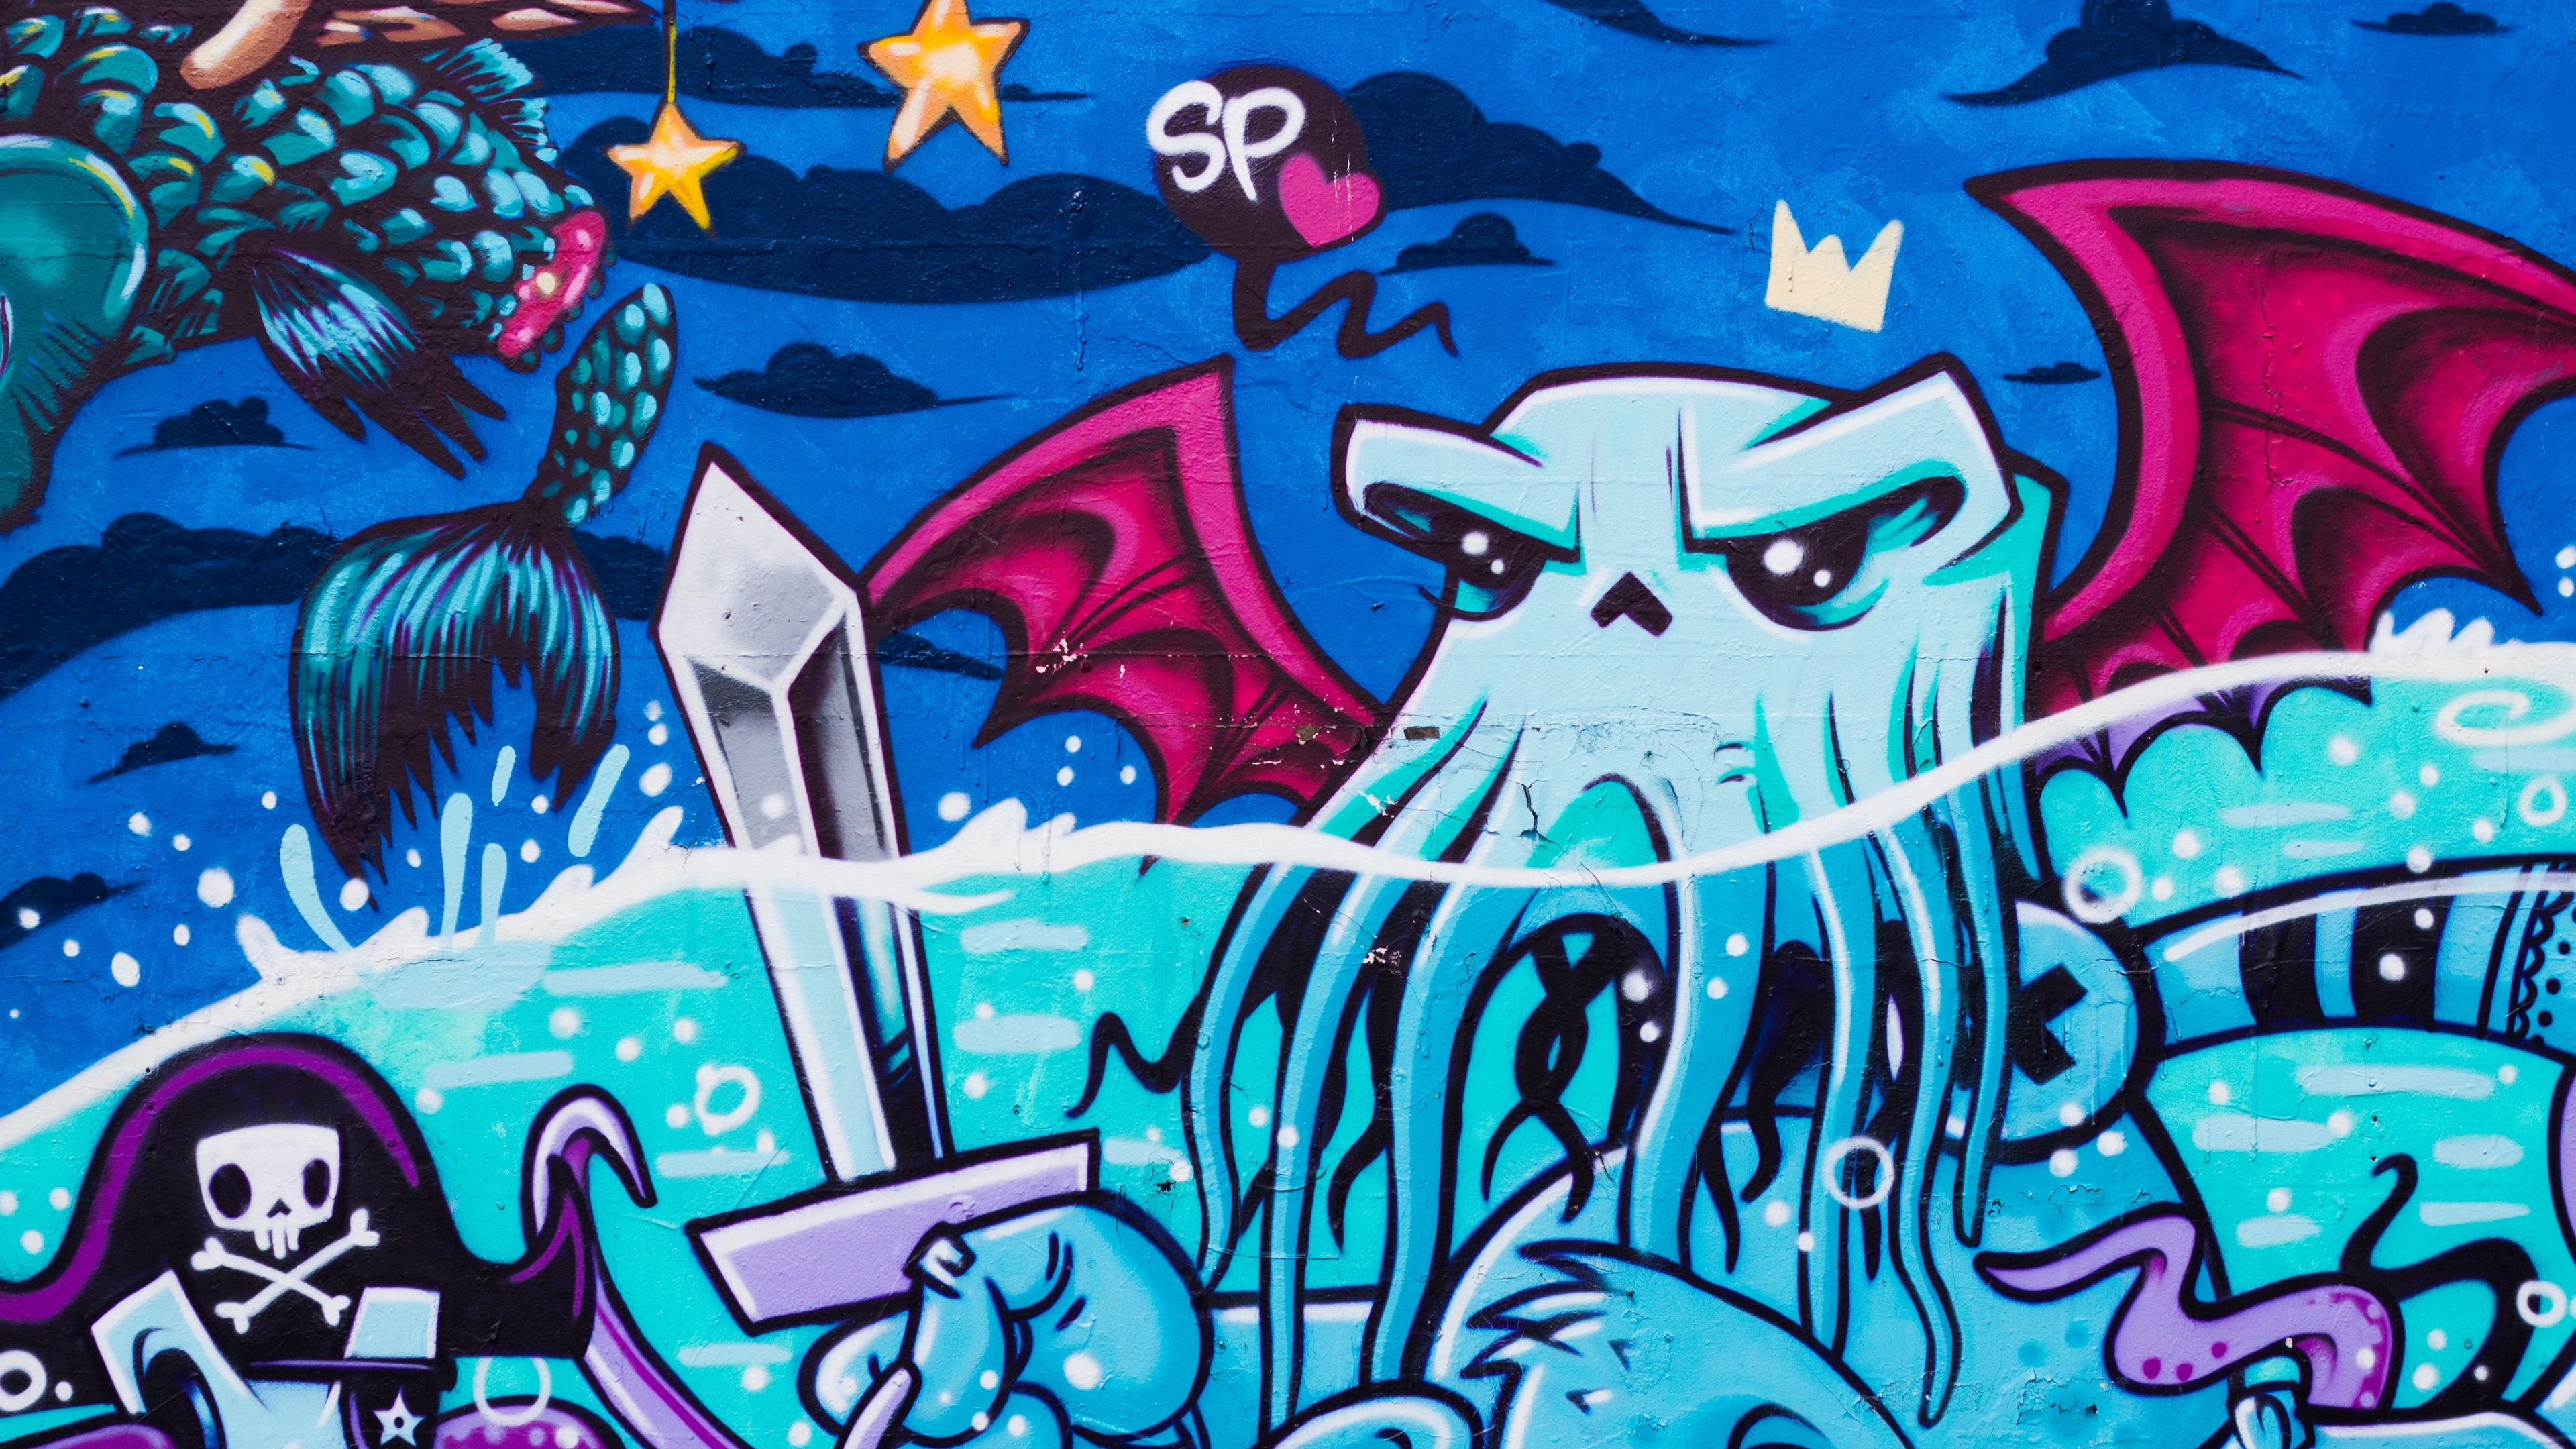 Graffiti Octopus Street Art 4k Street Art Octopus Graffiti In 2021 Graffiti Graffiti Wallpaper Street Art